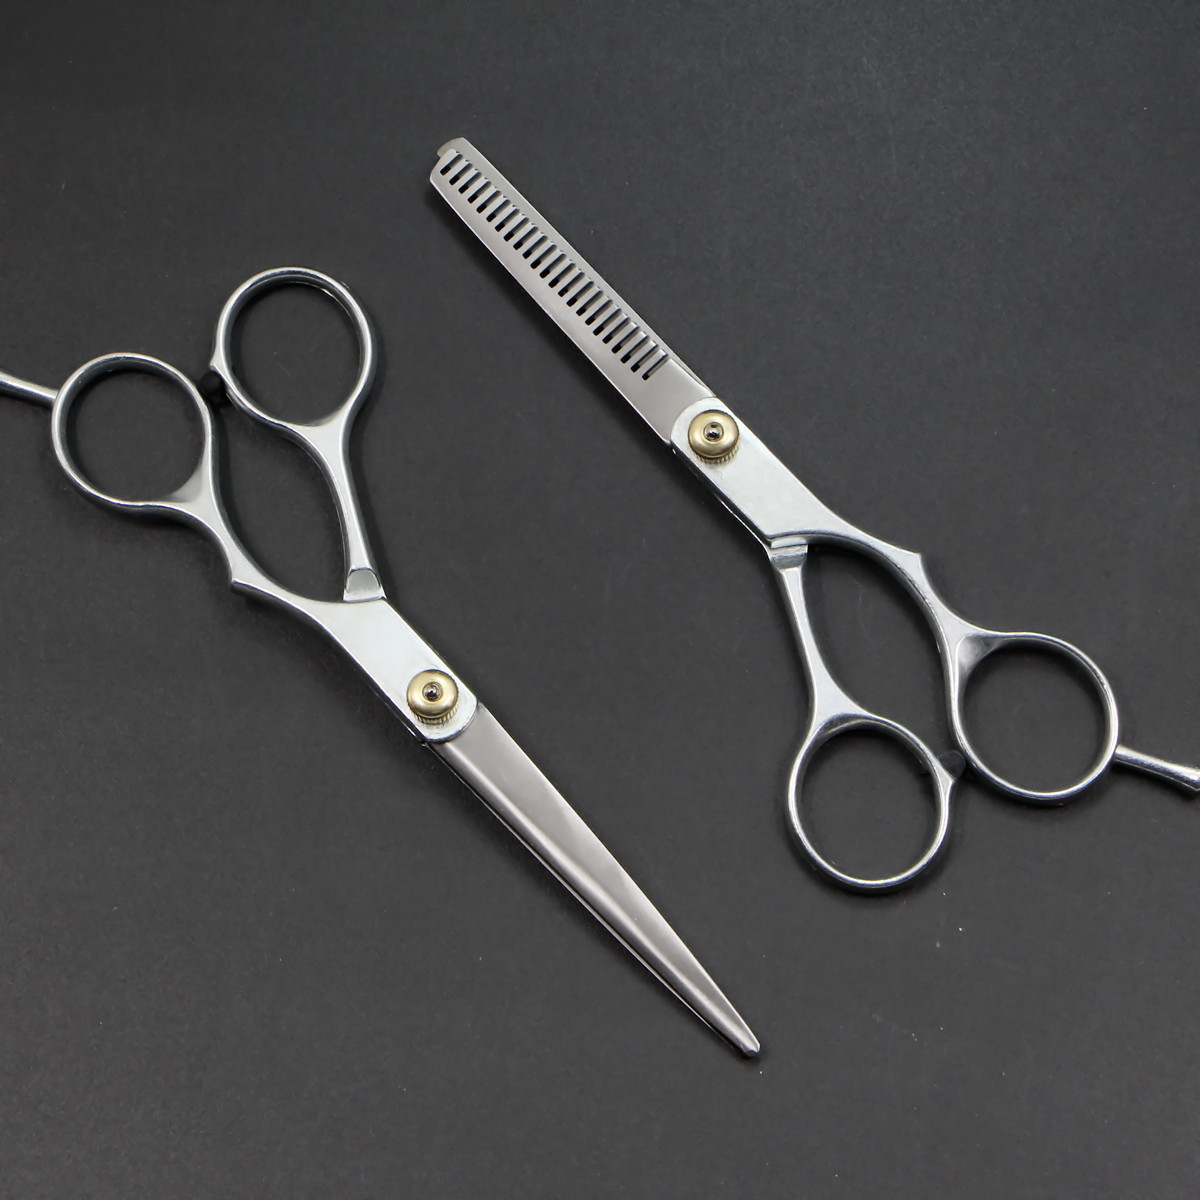 Split Type Shear Manufacturers Wholesale Customizable Hairdressing Scissors Straight Snips Thinning Scissors Bang Scissors